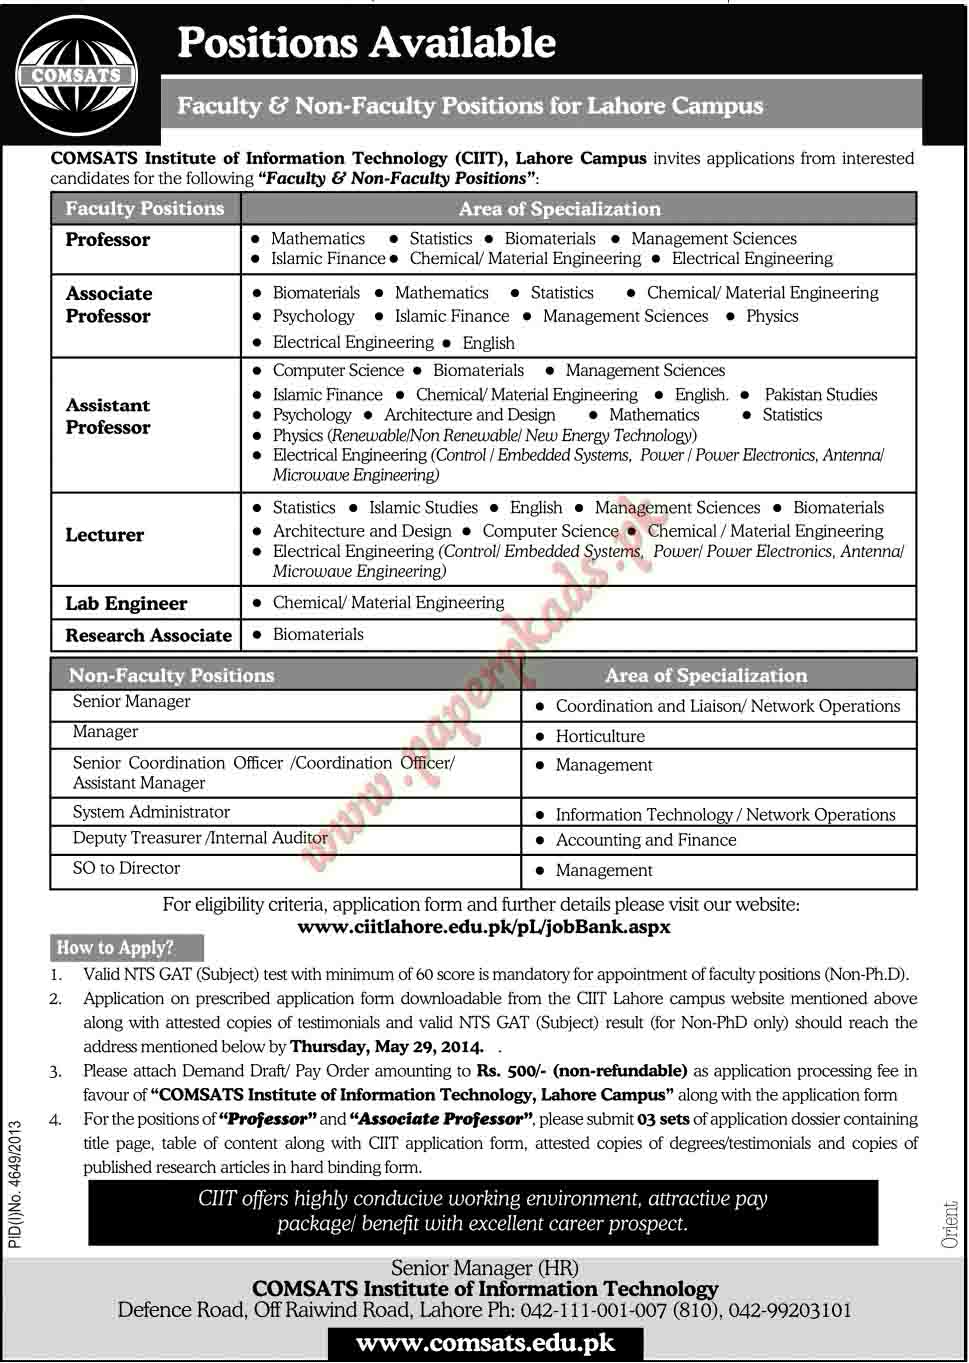 Professor, Associate Professor, Assistant Professor, Lecturer, Lab Engineer, Research Associate Jobs in Lahore